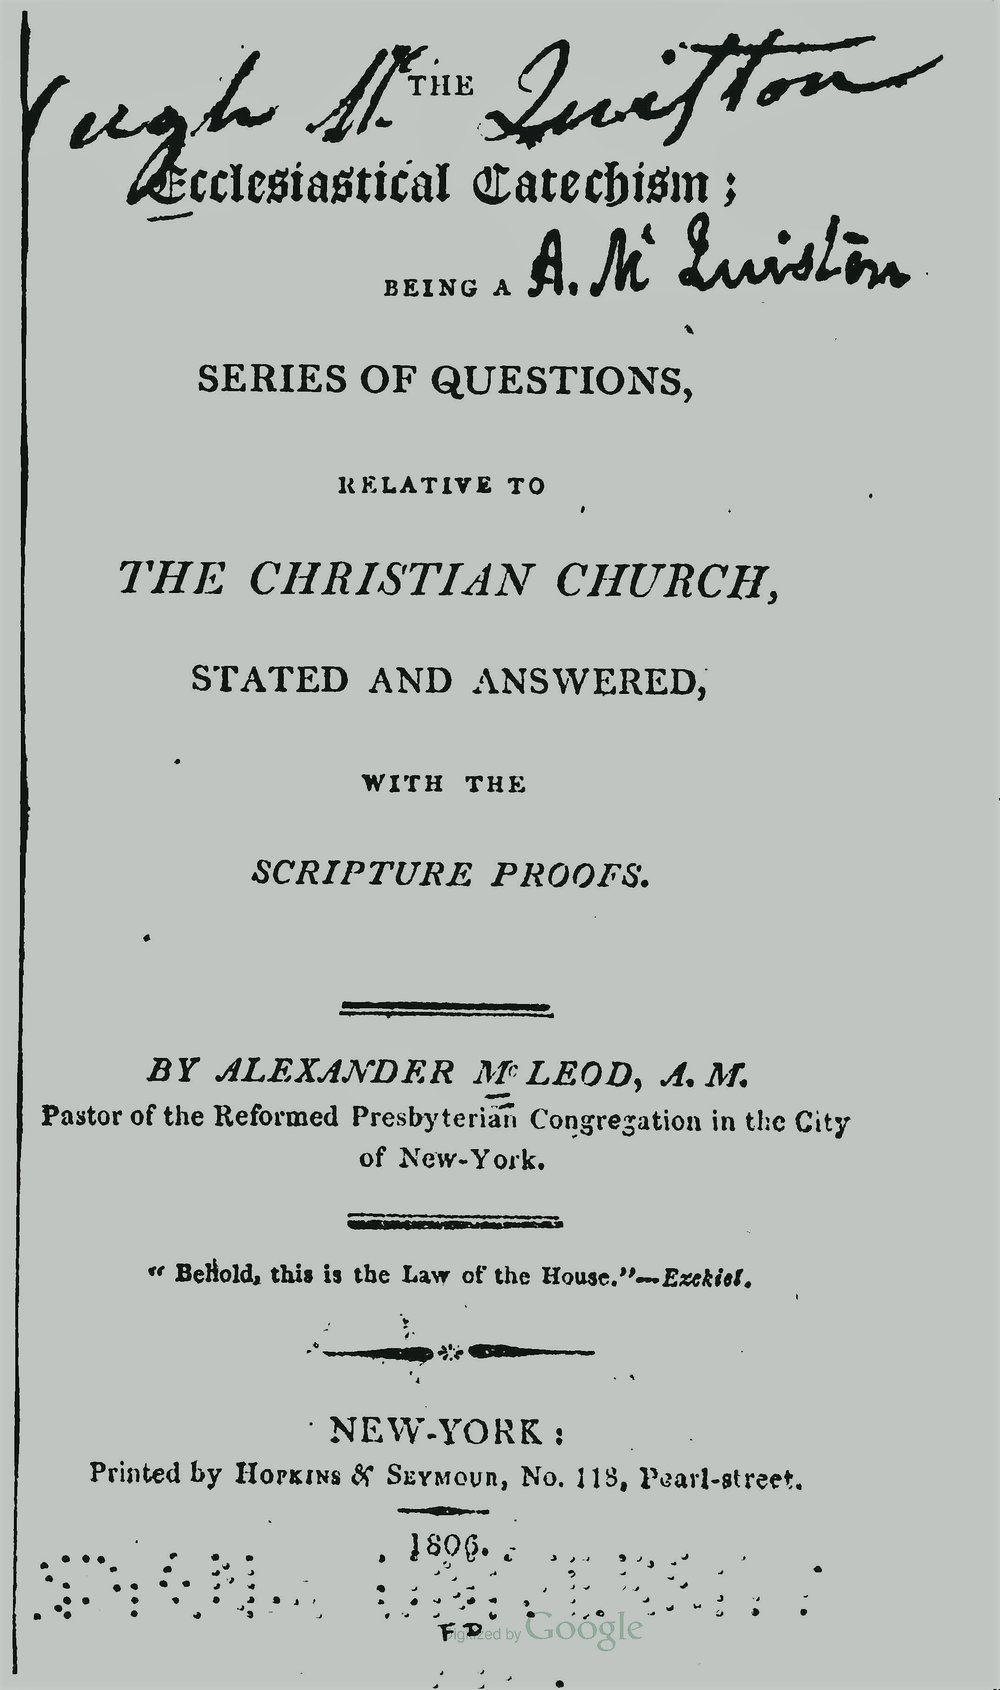 McLeod, Alexander, The Ecclesiastical Catechism Title Page.jpg